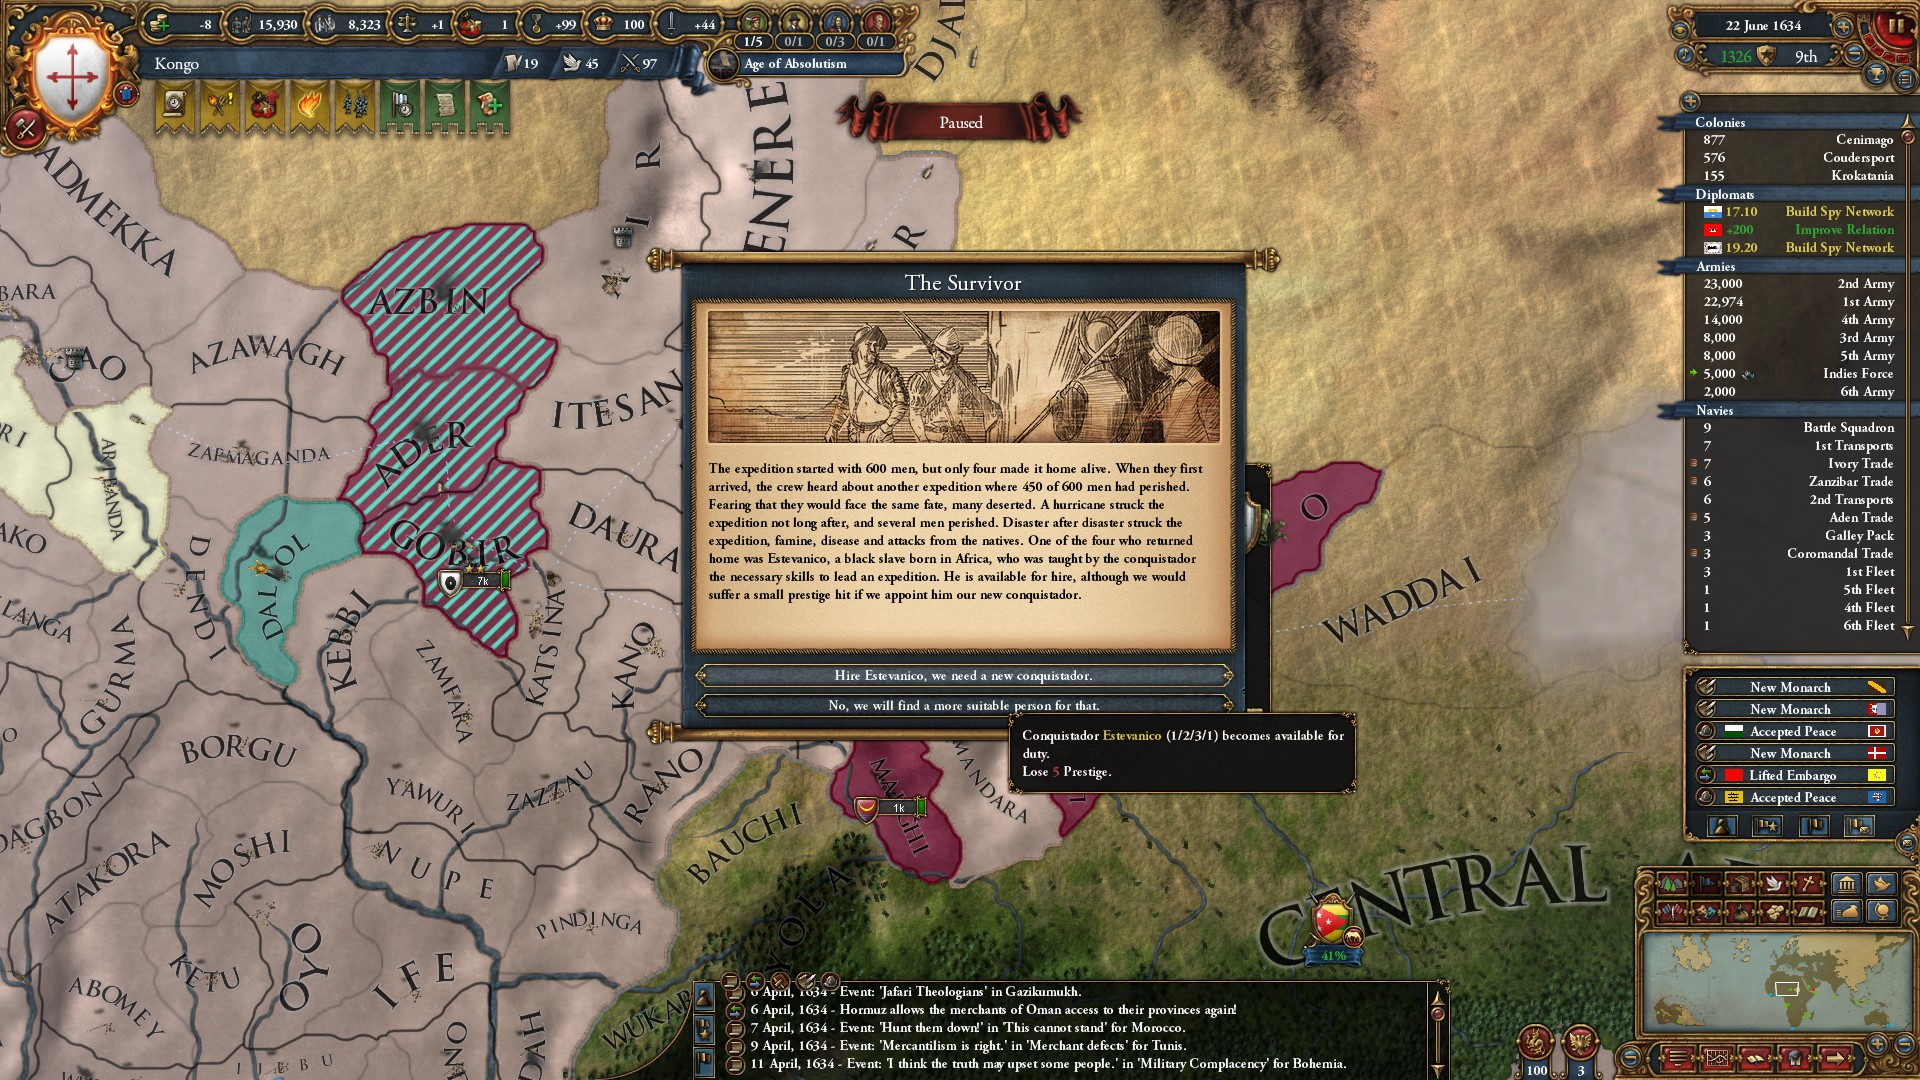 African, taking prestige hit to hire an African | Paradox